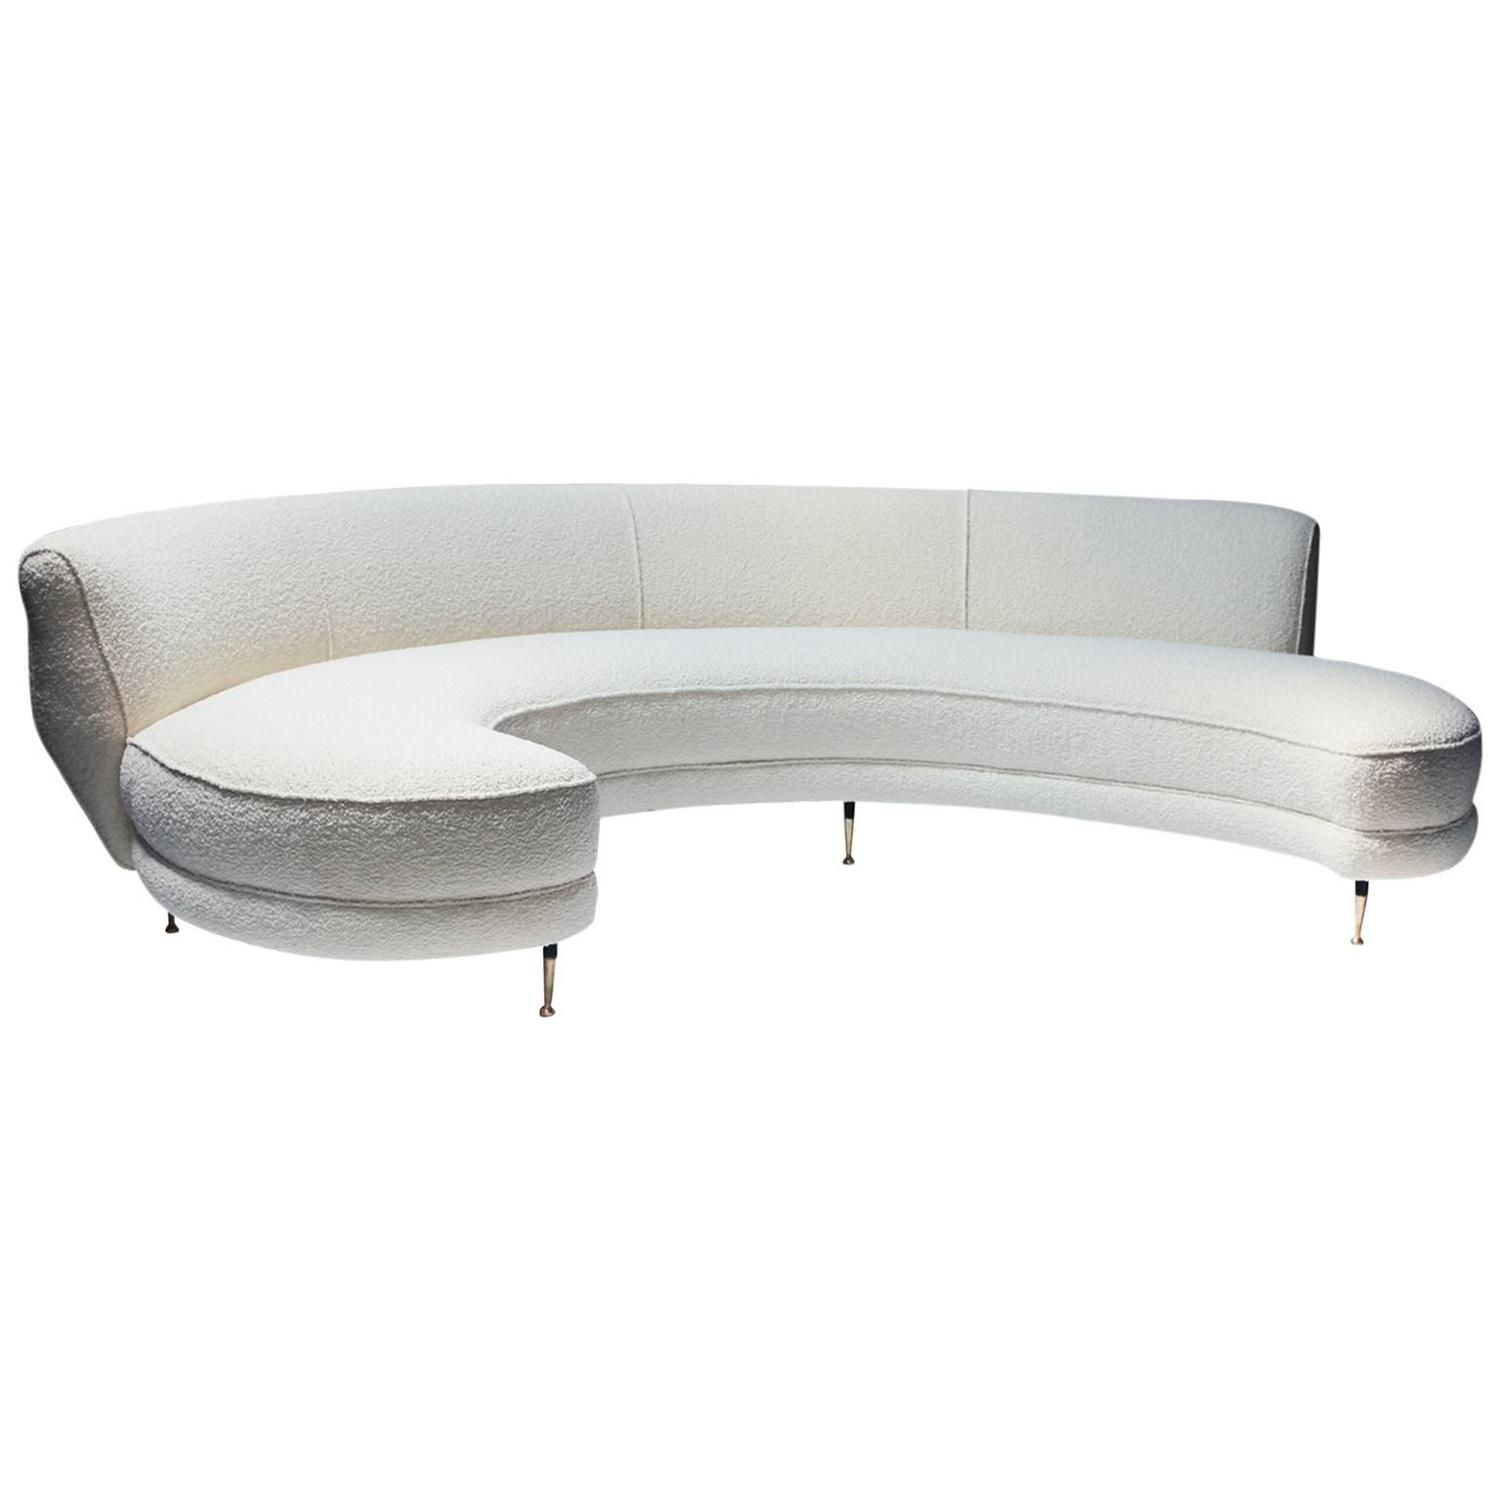 Italian Curved Sofa With Br Legs